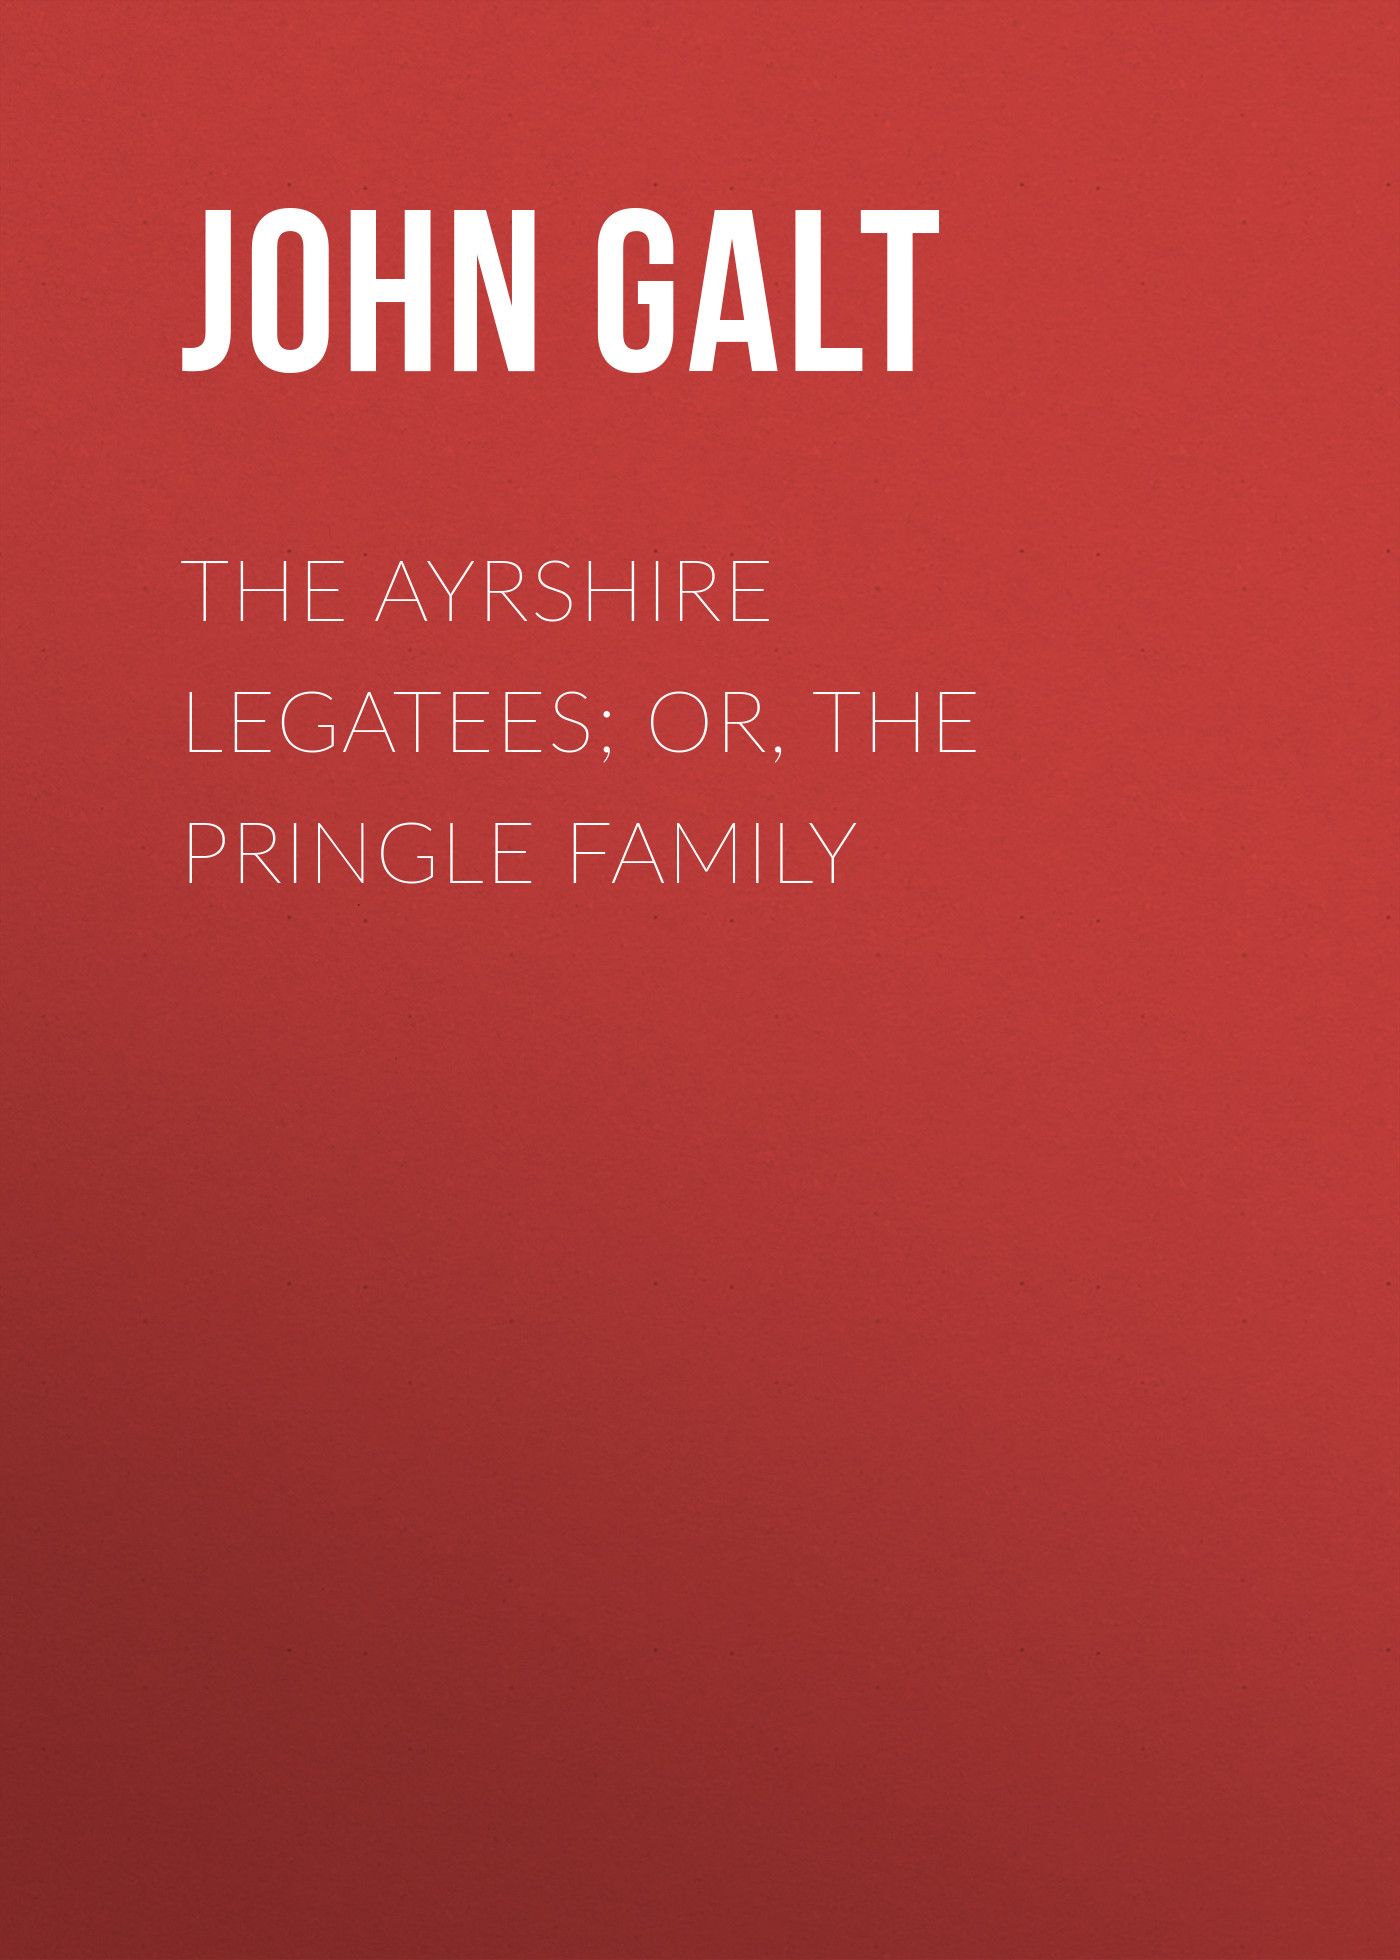 John Galt The Ayrshire Legatees; Or, The Pringle Family